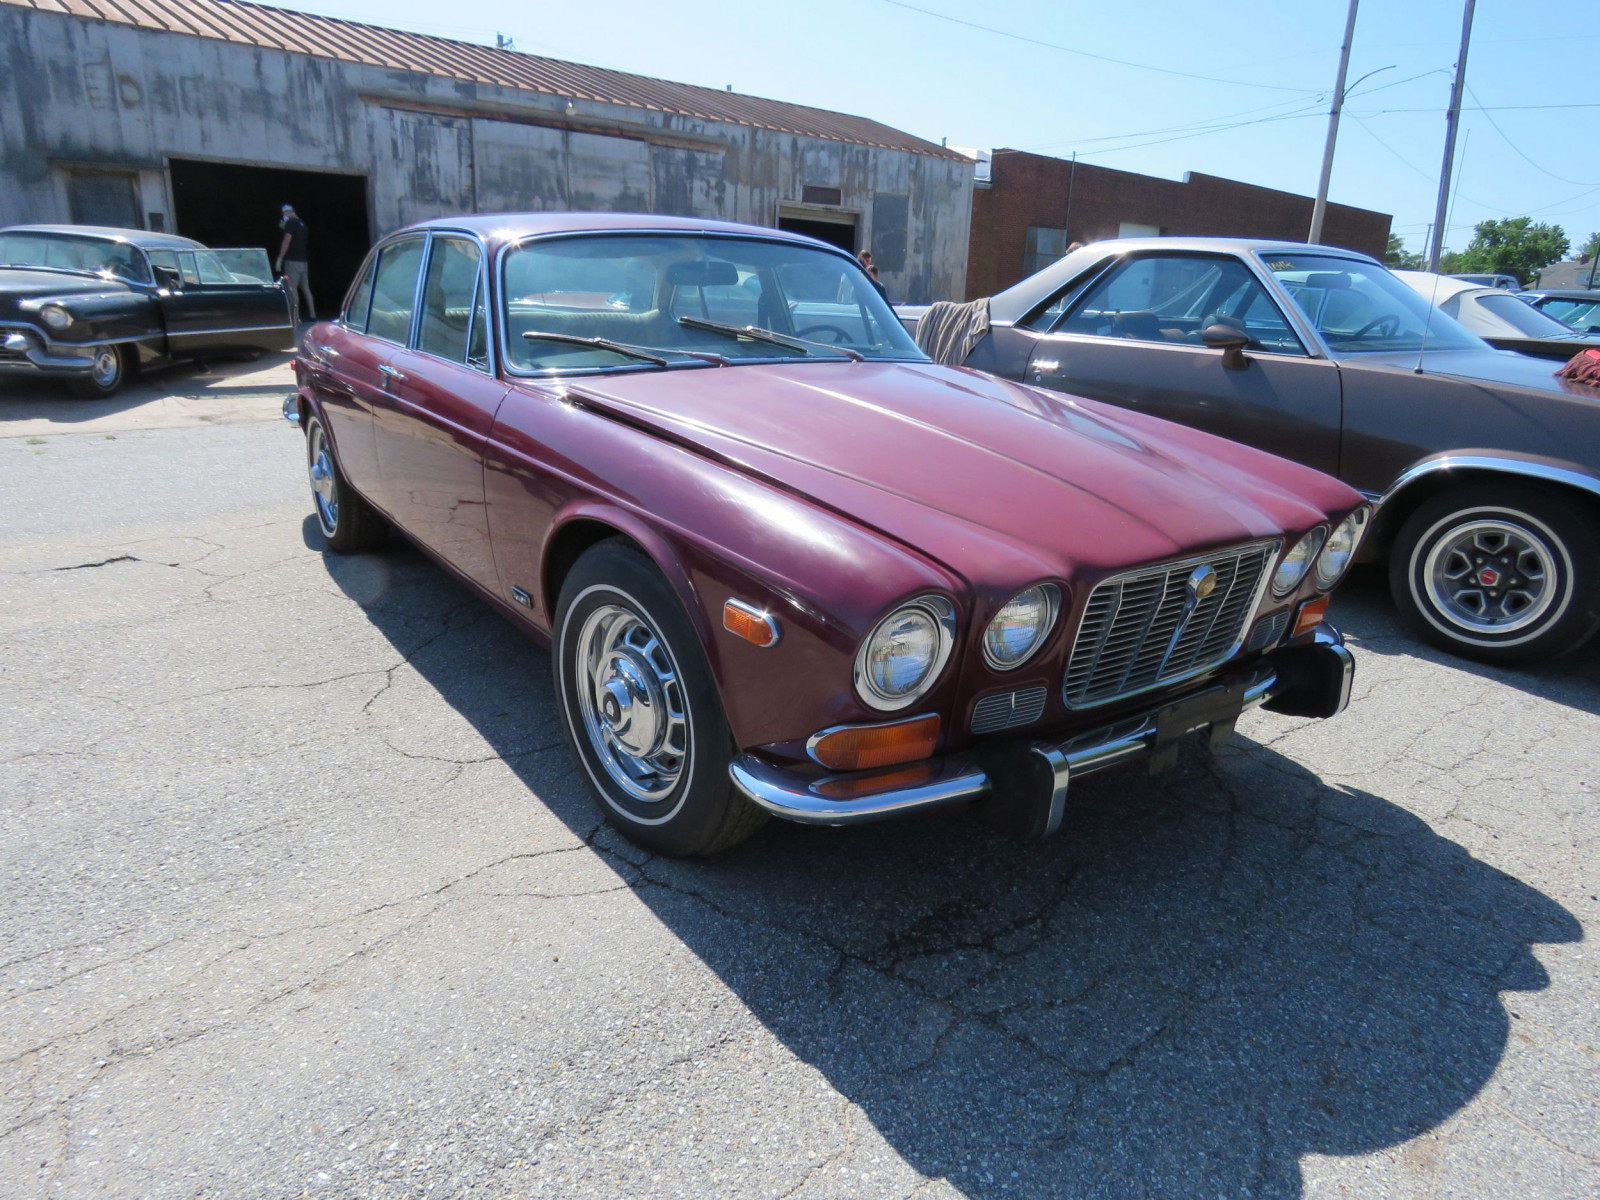 1973 JAGUAR XJ6 4DR SEDAN - Image 3